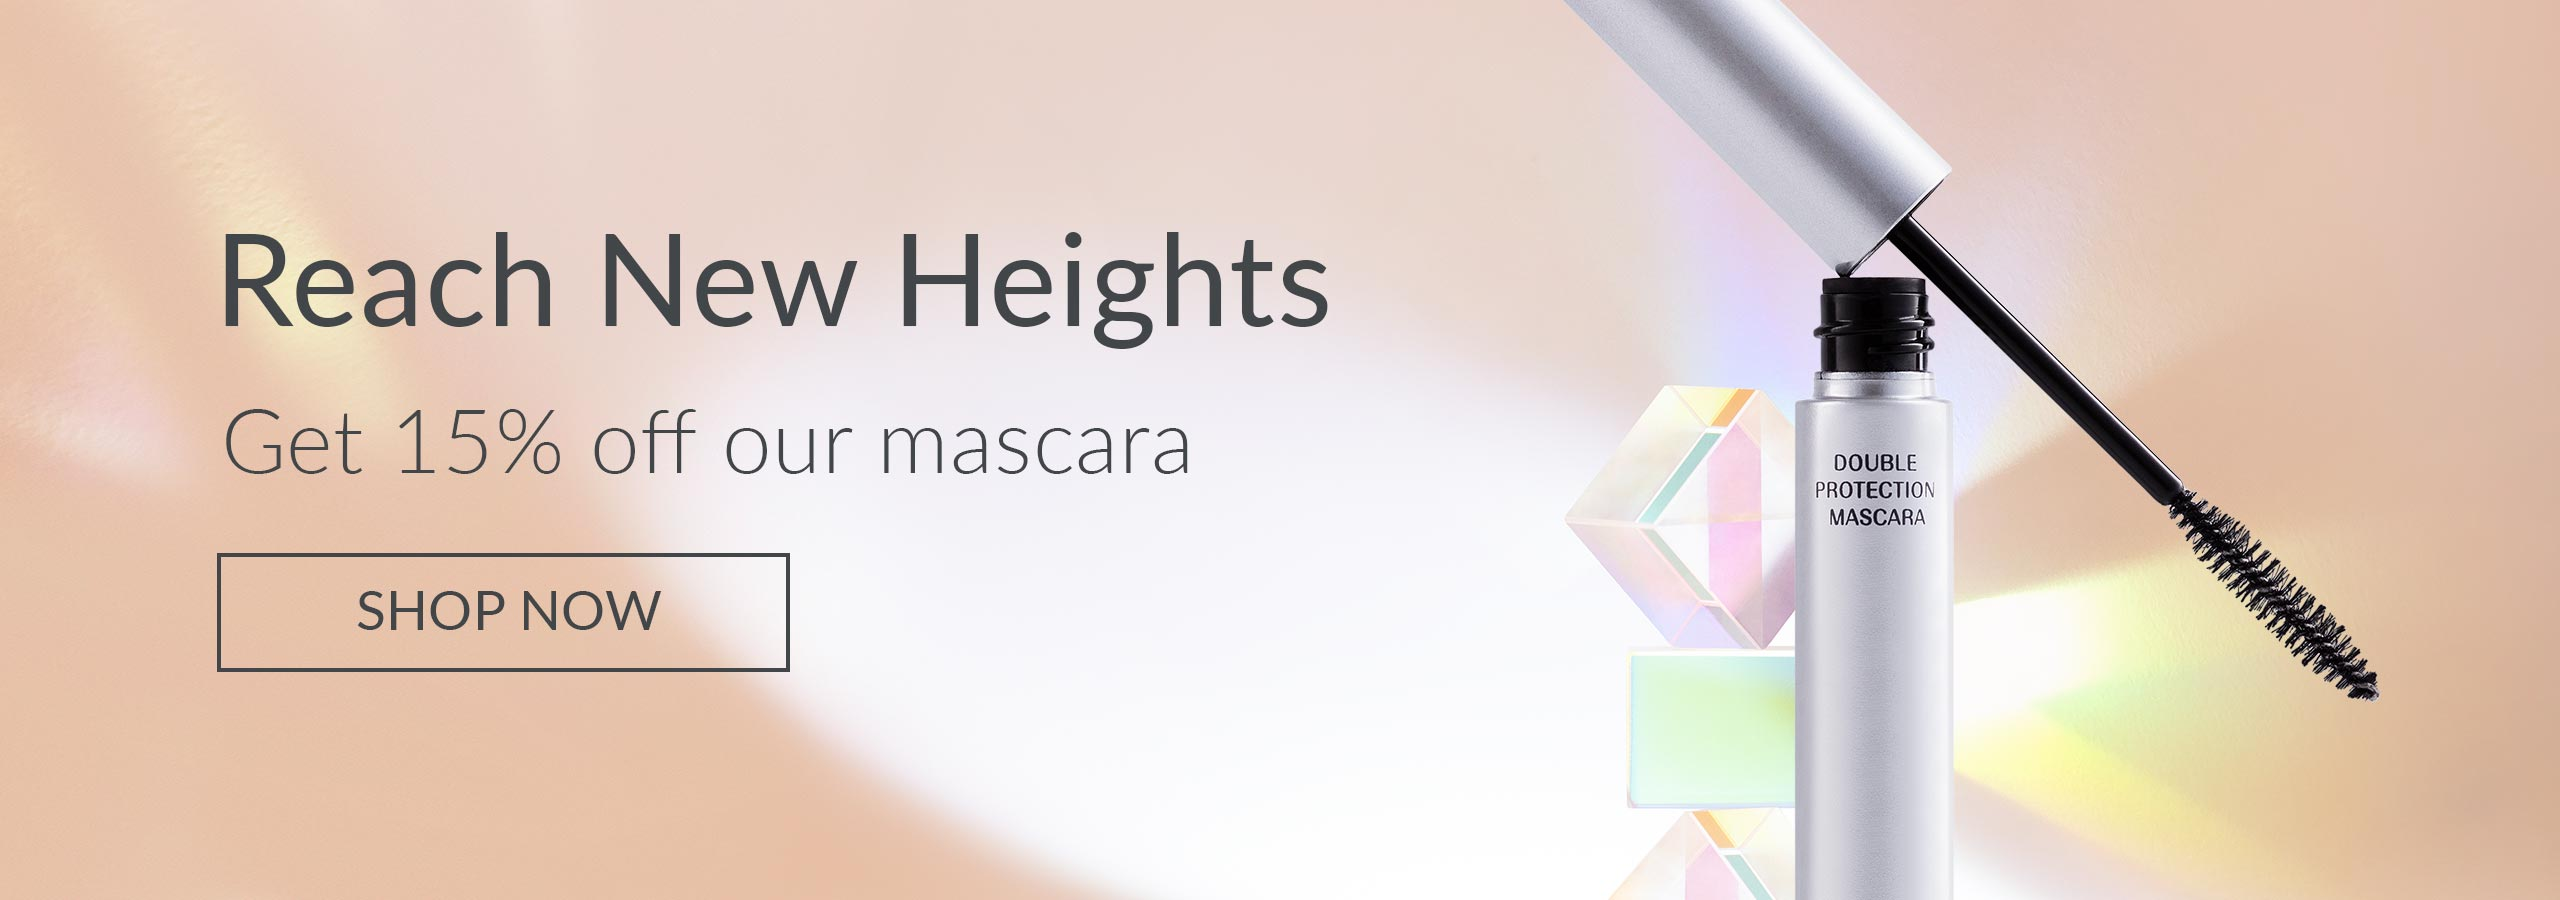 Reach new heights. Save 15% on our mascara.